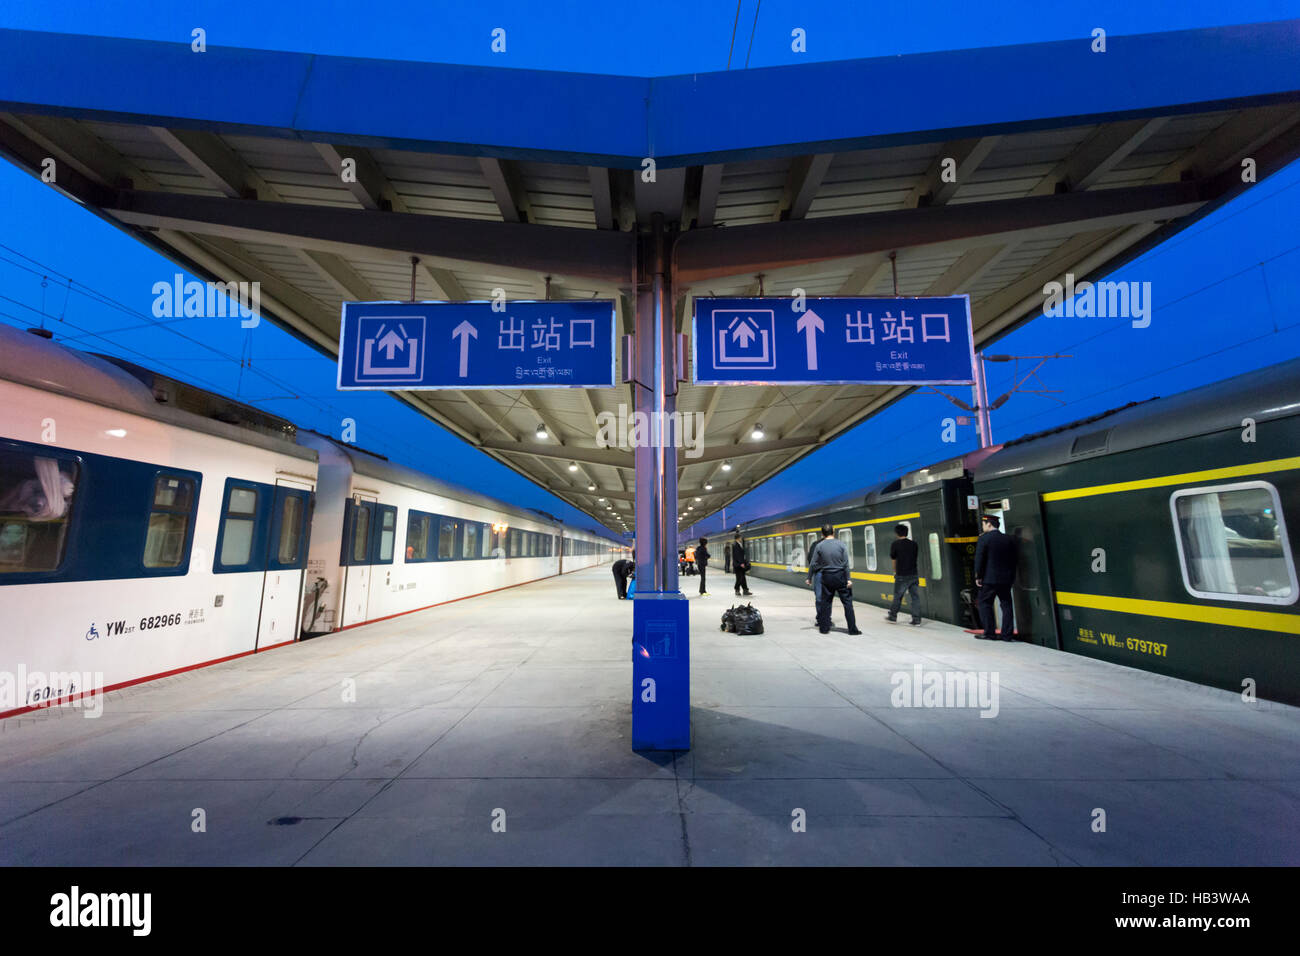 People boarding at a train station early evening in Tibet - Stock Image